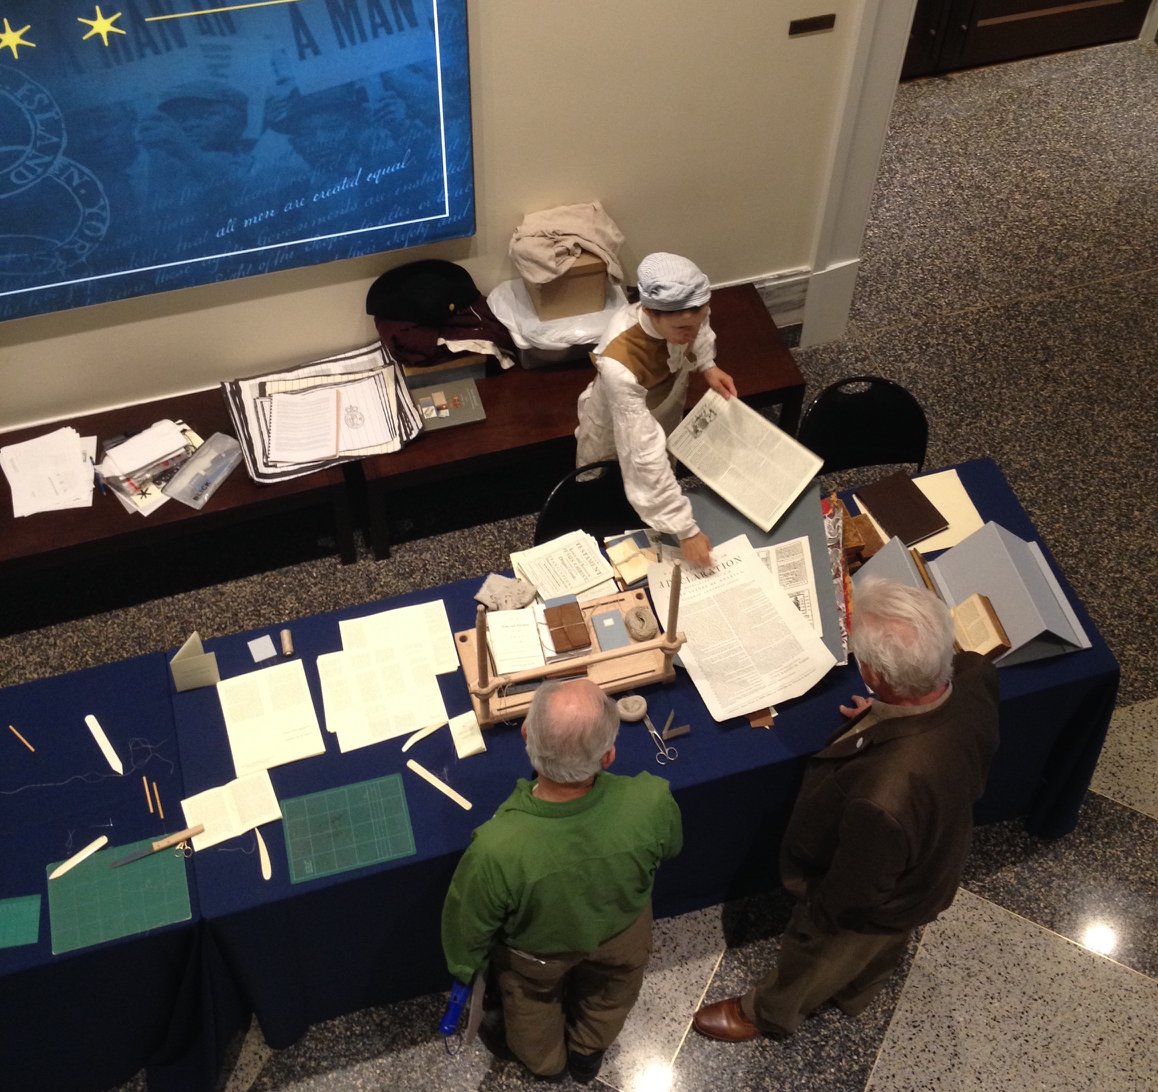 A top-down image of the table layout.